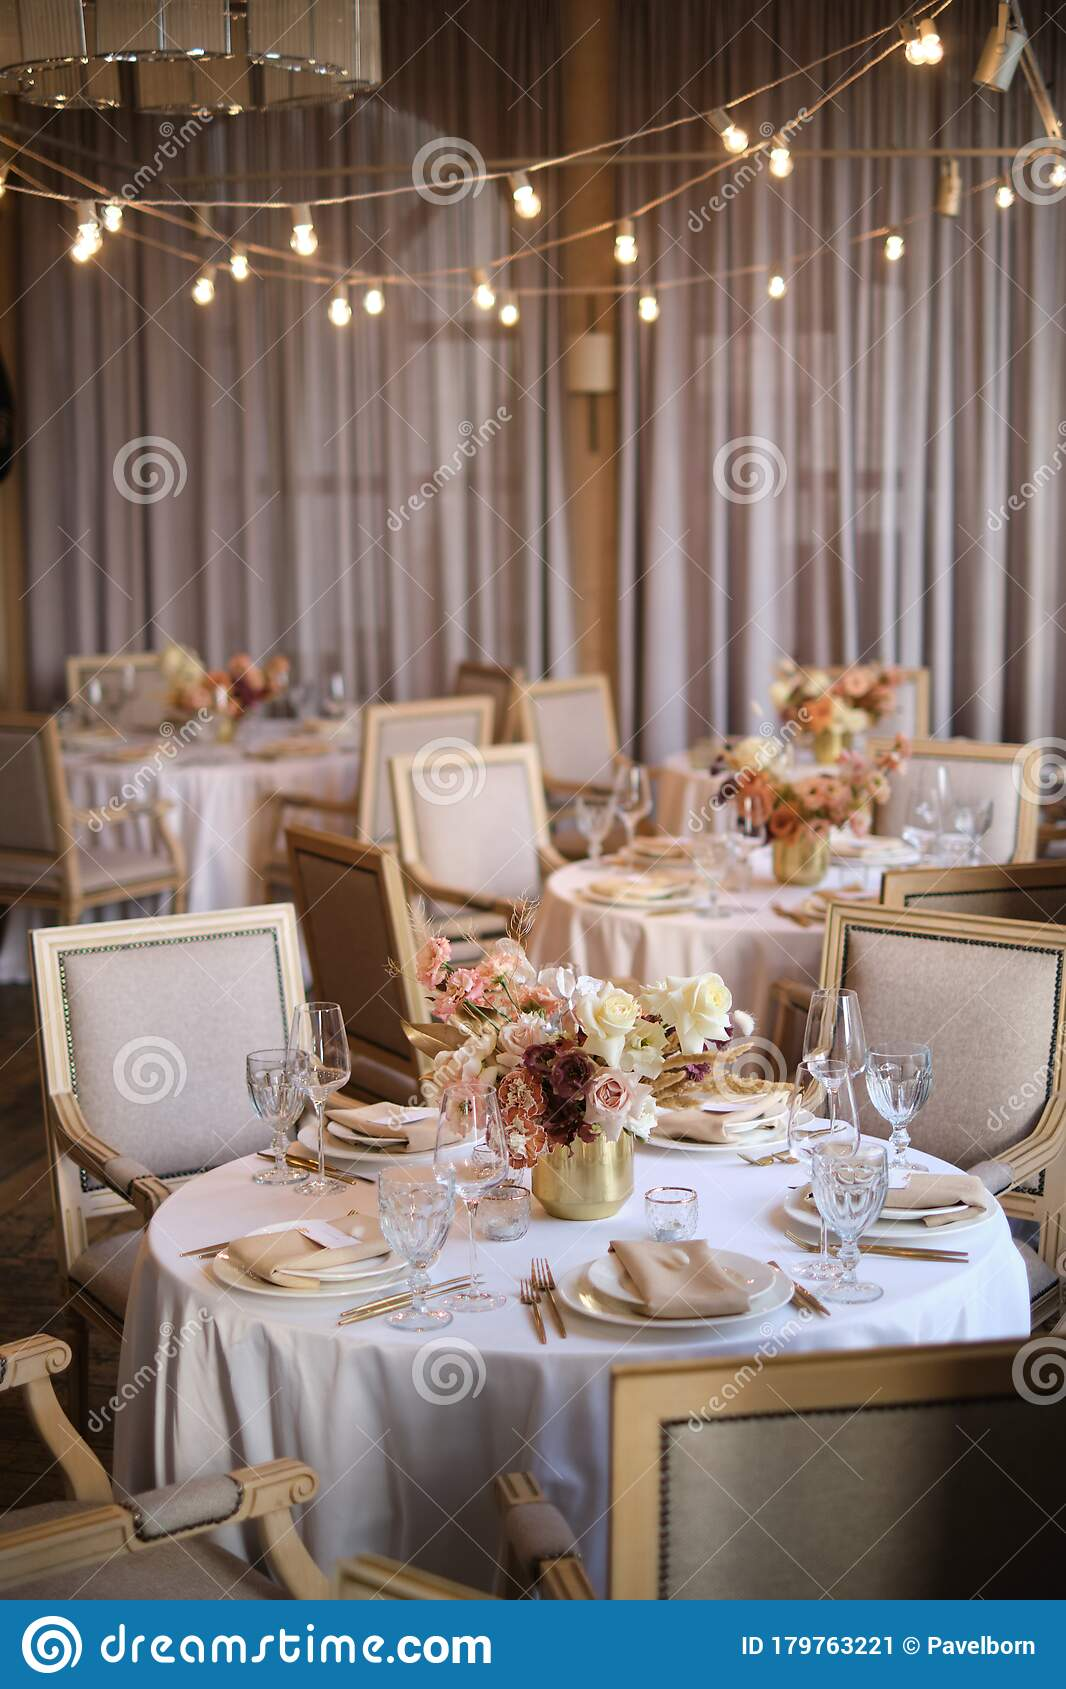 Luxury Cozy Autumn Wedding Table Decoration In The Restaurant Fresh And Dried Flowers Roses Carnations Beautiful Table Setting Stock Image Image Of Restaurant Dried 179763221